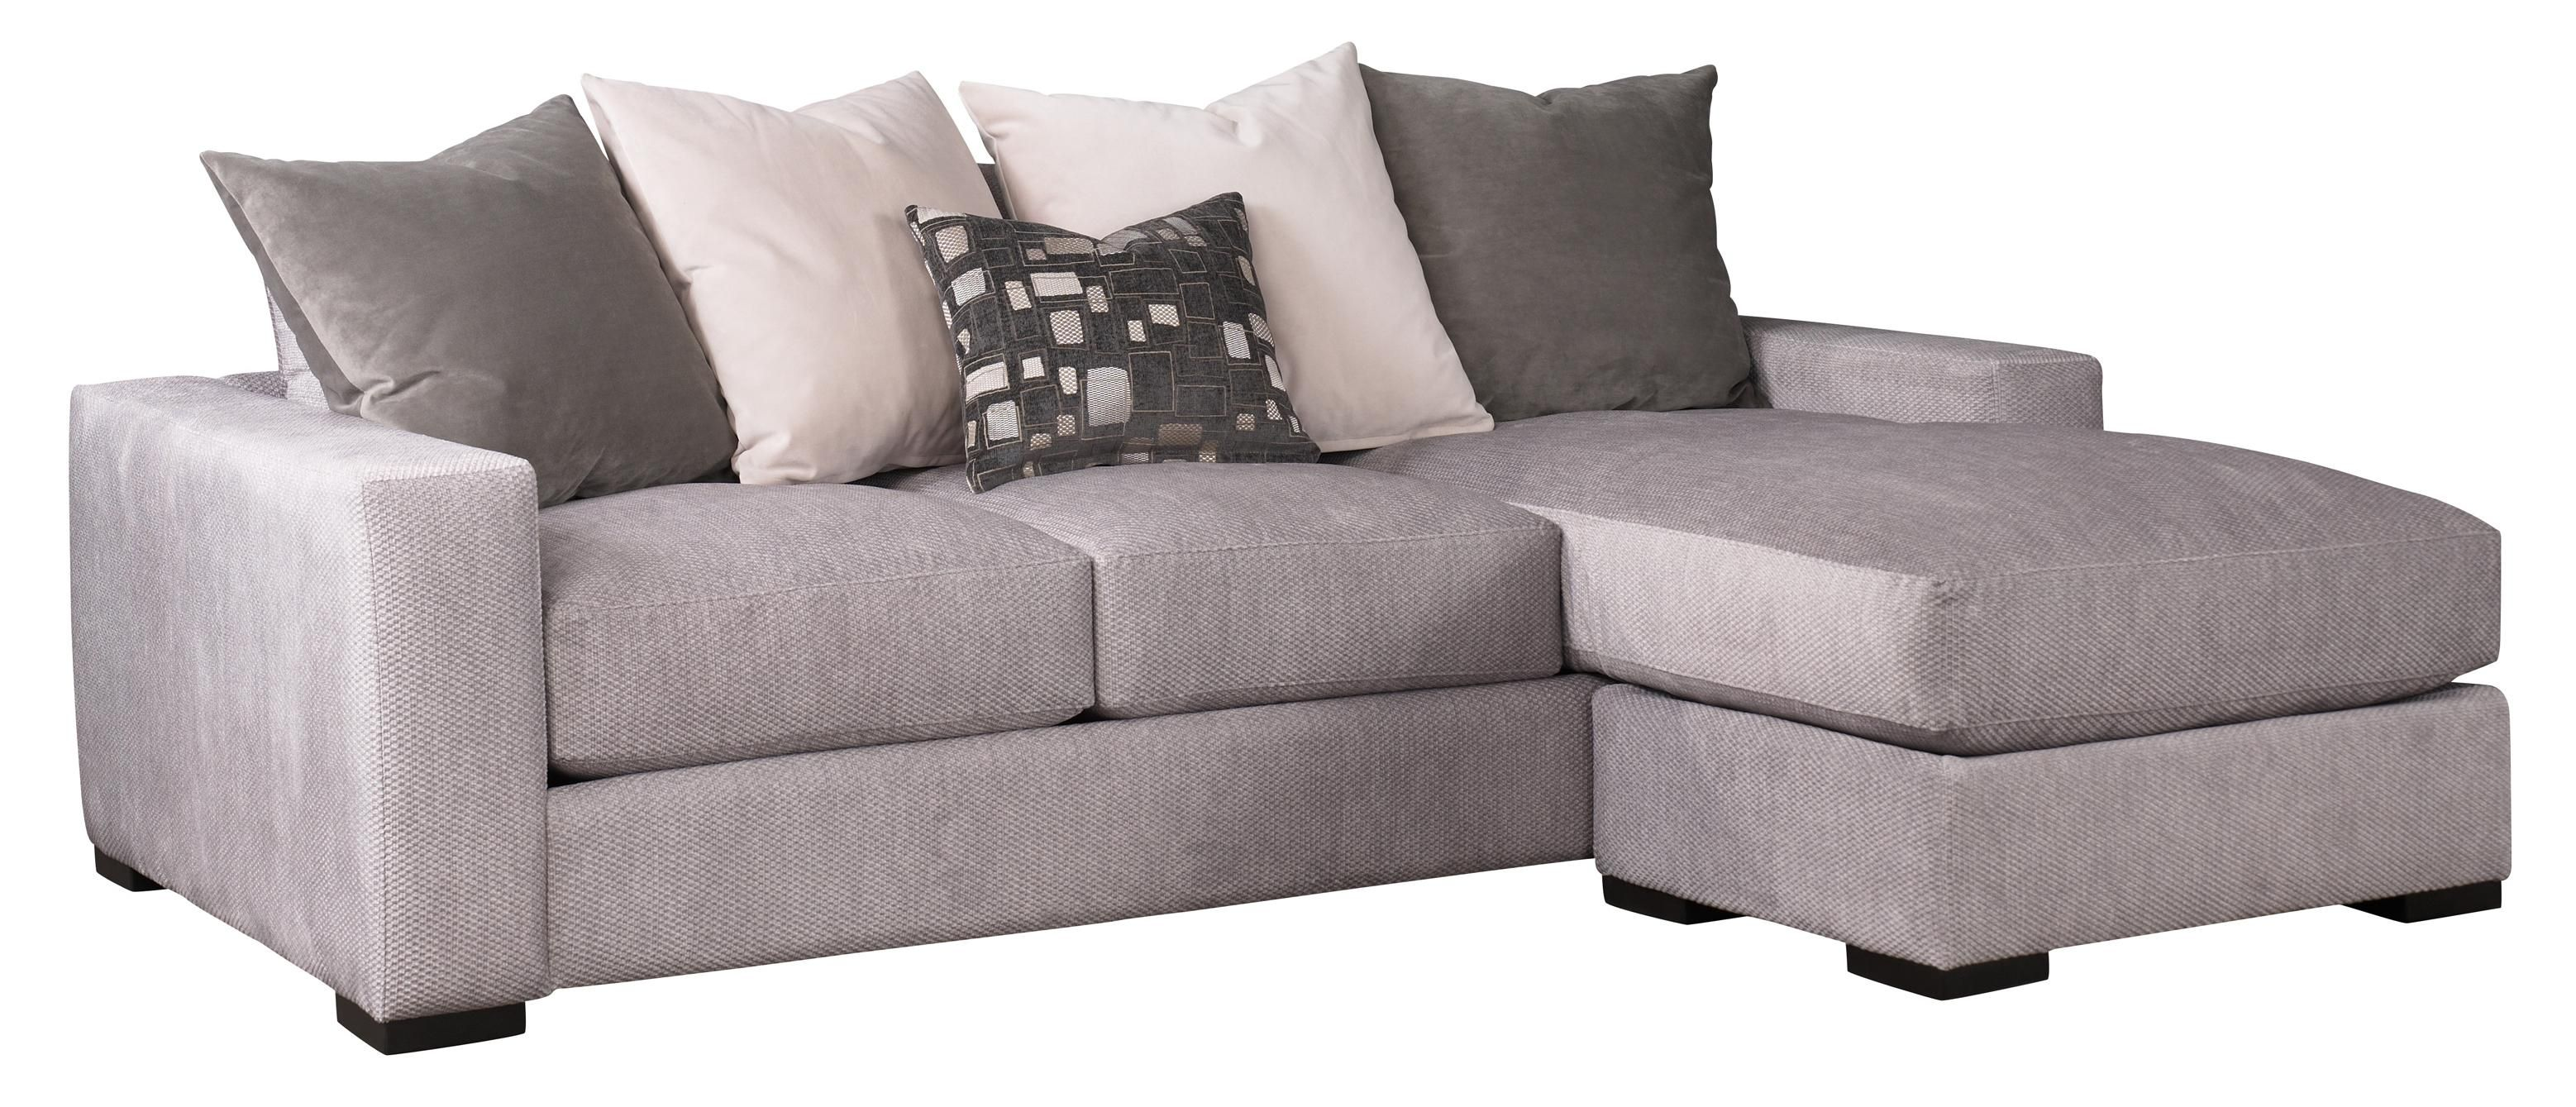 New Couch - Lombardy Sofa w/ Reversible Chaise by Jonathan Louis  sc 1 st  Pinterest : jonathan louis chaise lounge - Sectionals, Sofas & Couches